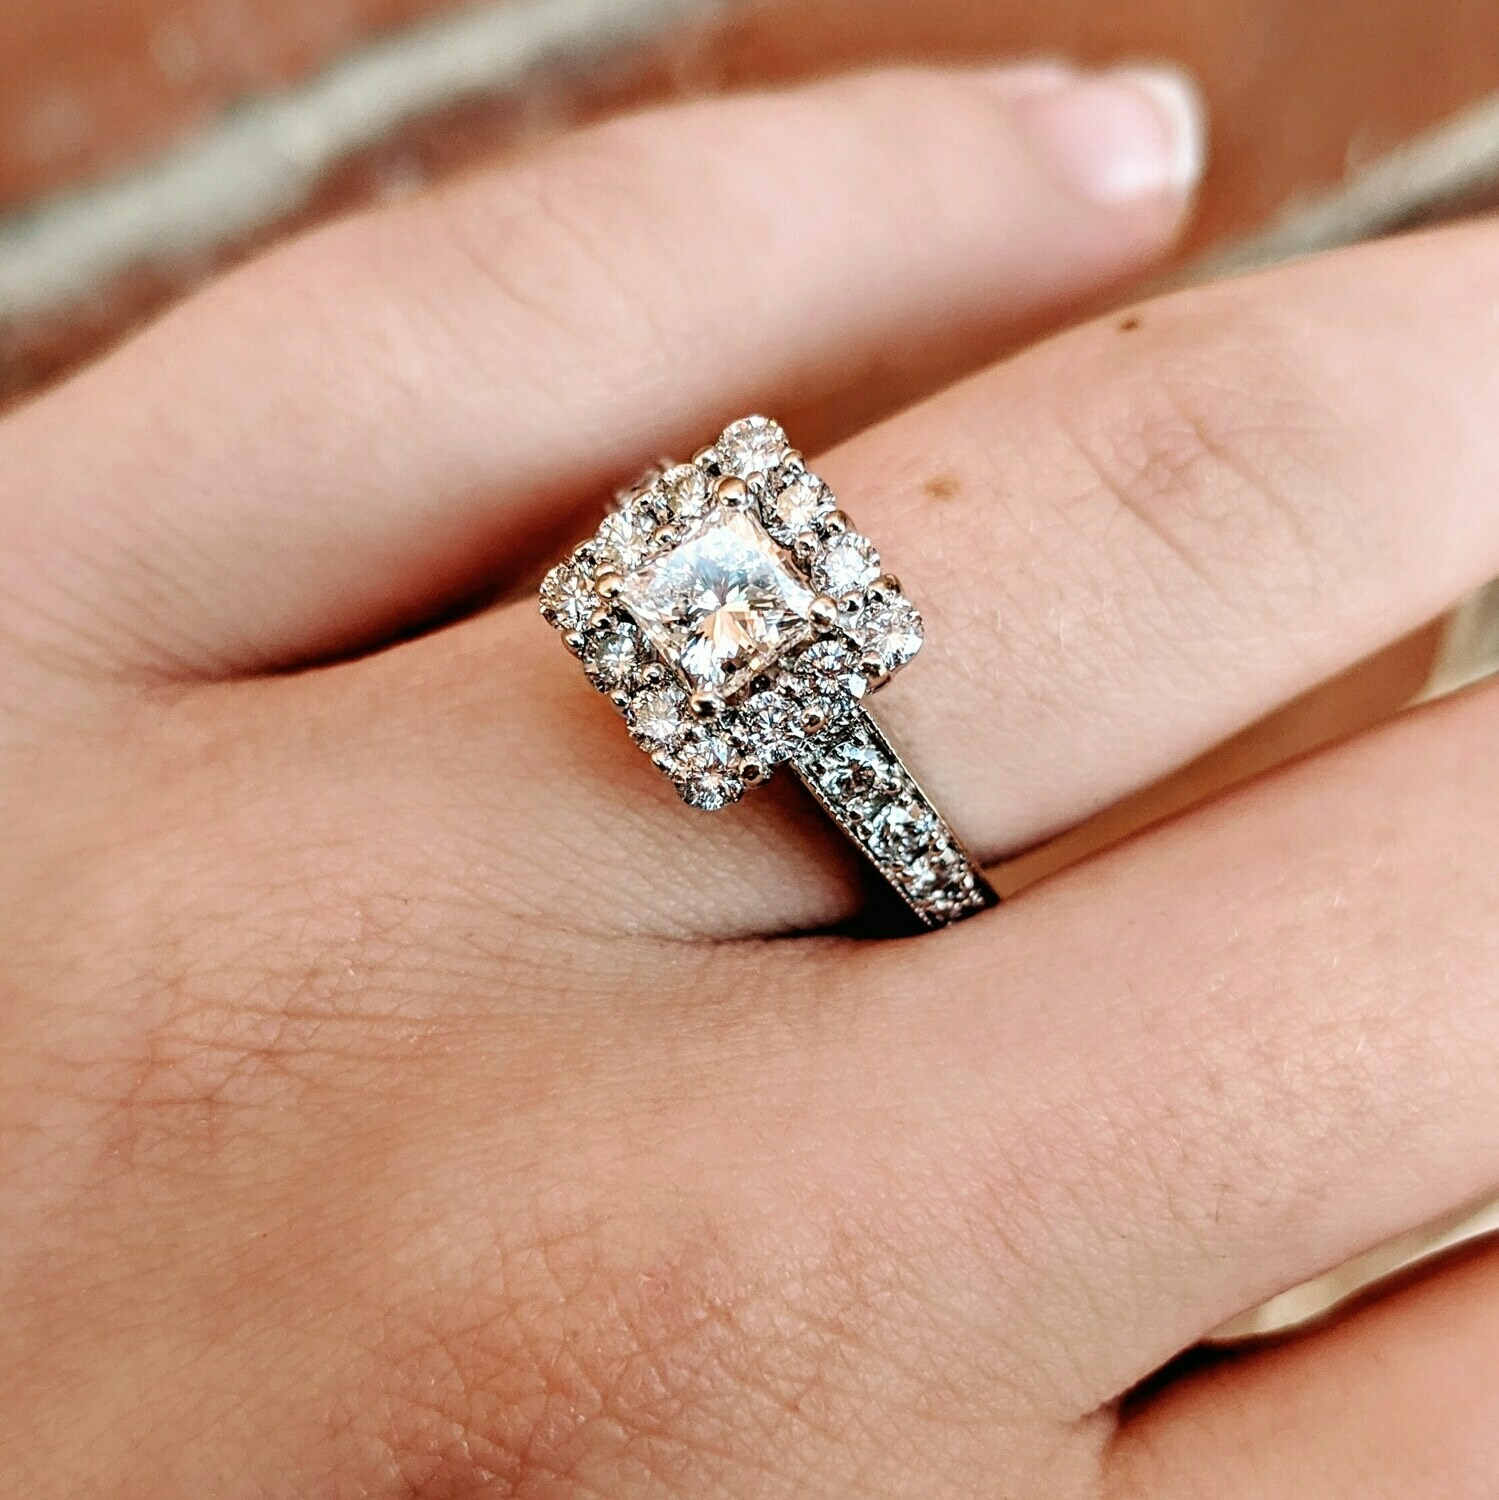 1.5 Cttw Princess Diamond Halo Engagement Ring 14k WG from Zales, Sz 5.75